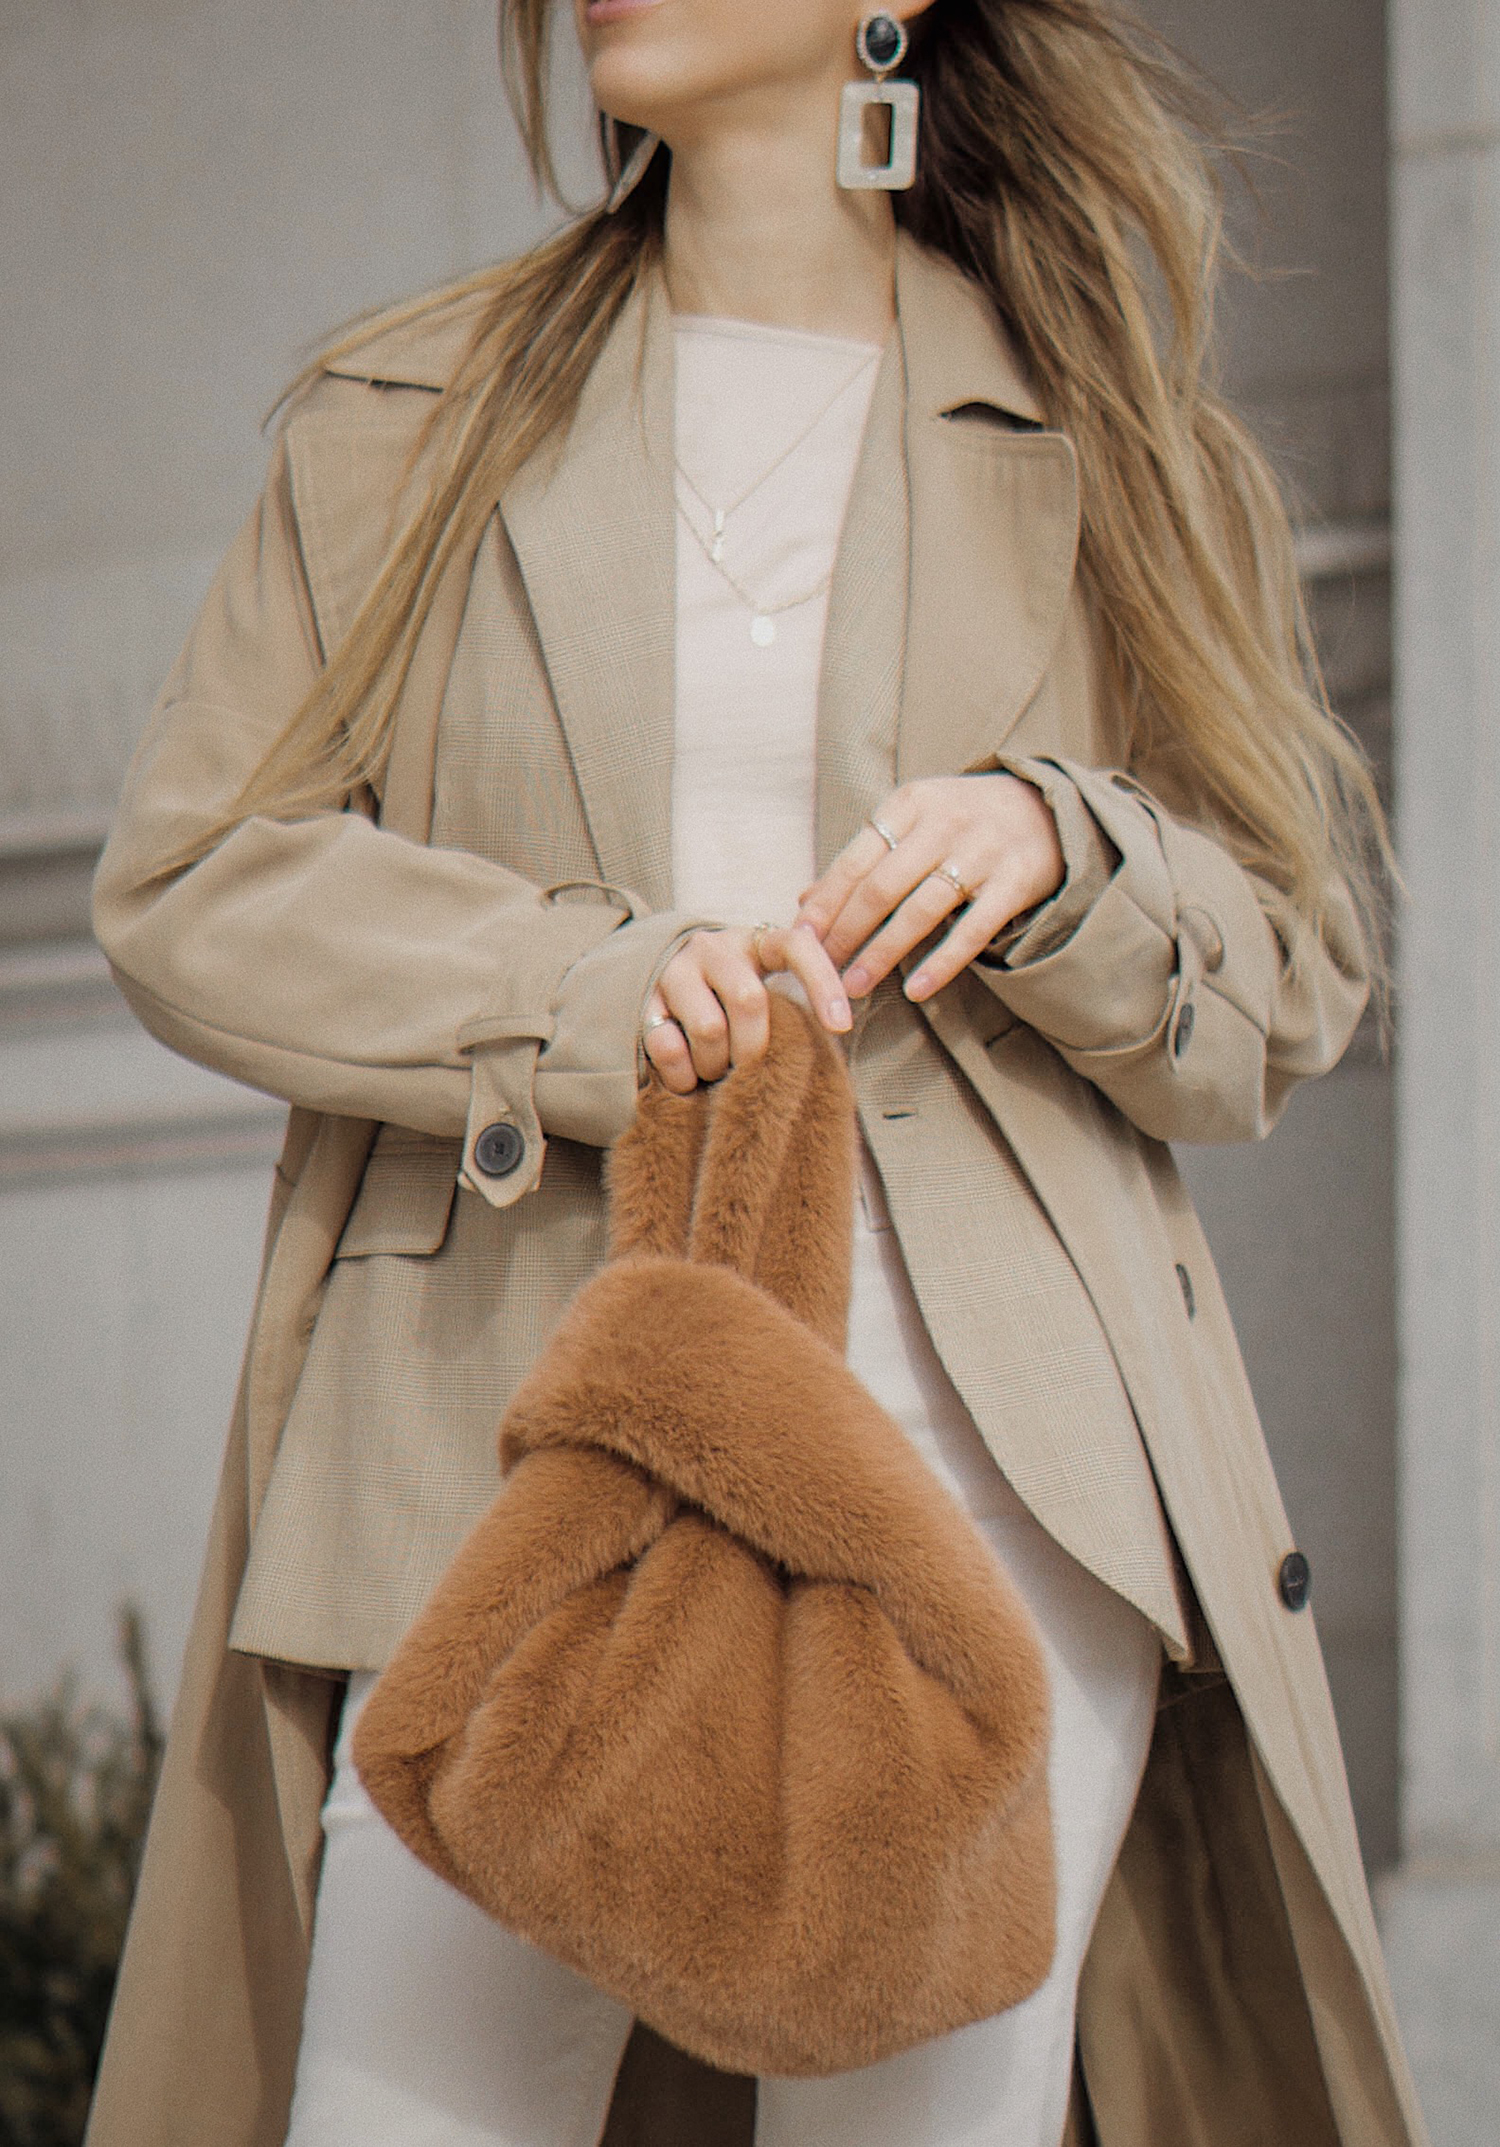 ralph_lauren_neutral_layers_outfit_fur_bag_vince_zara_trench_coat_street_style_lenajuice_thewhiteocean_01